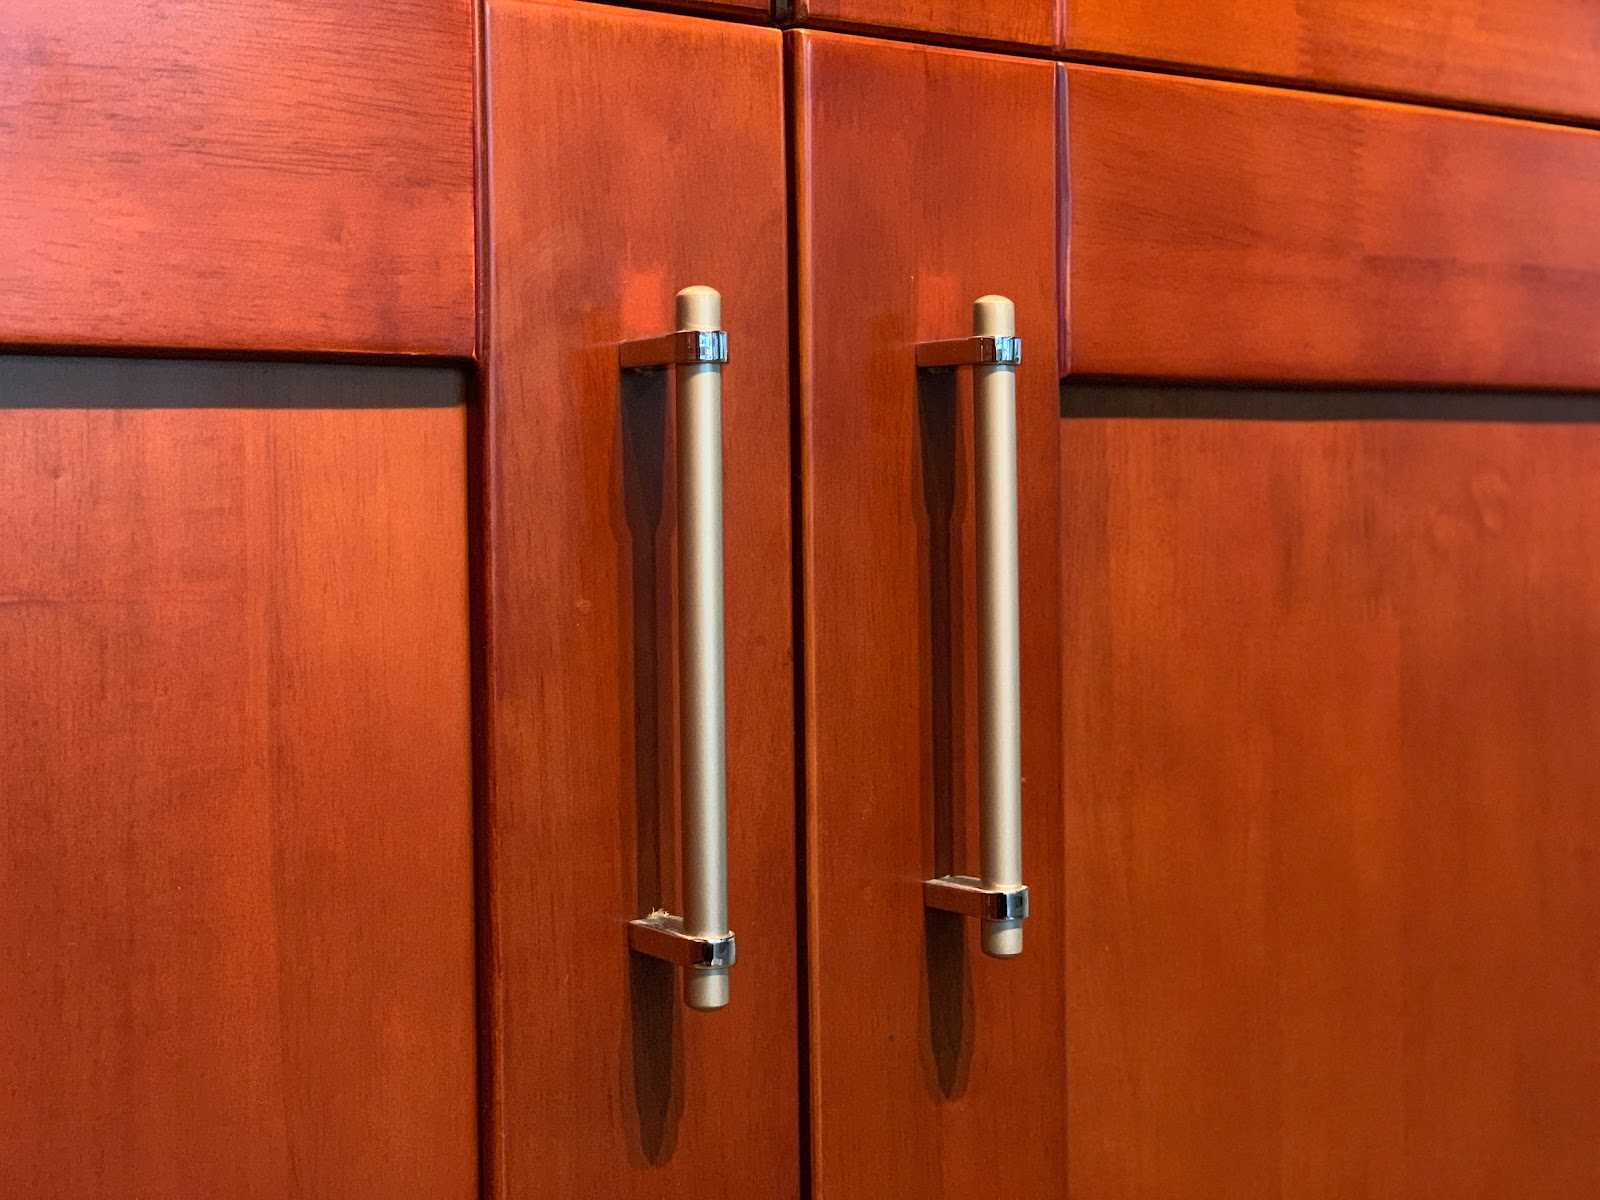 Top 9 Handles For Shaker Style Cabinets